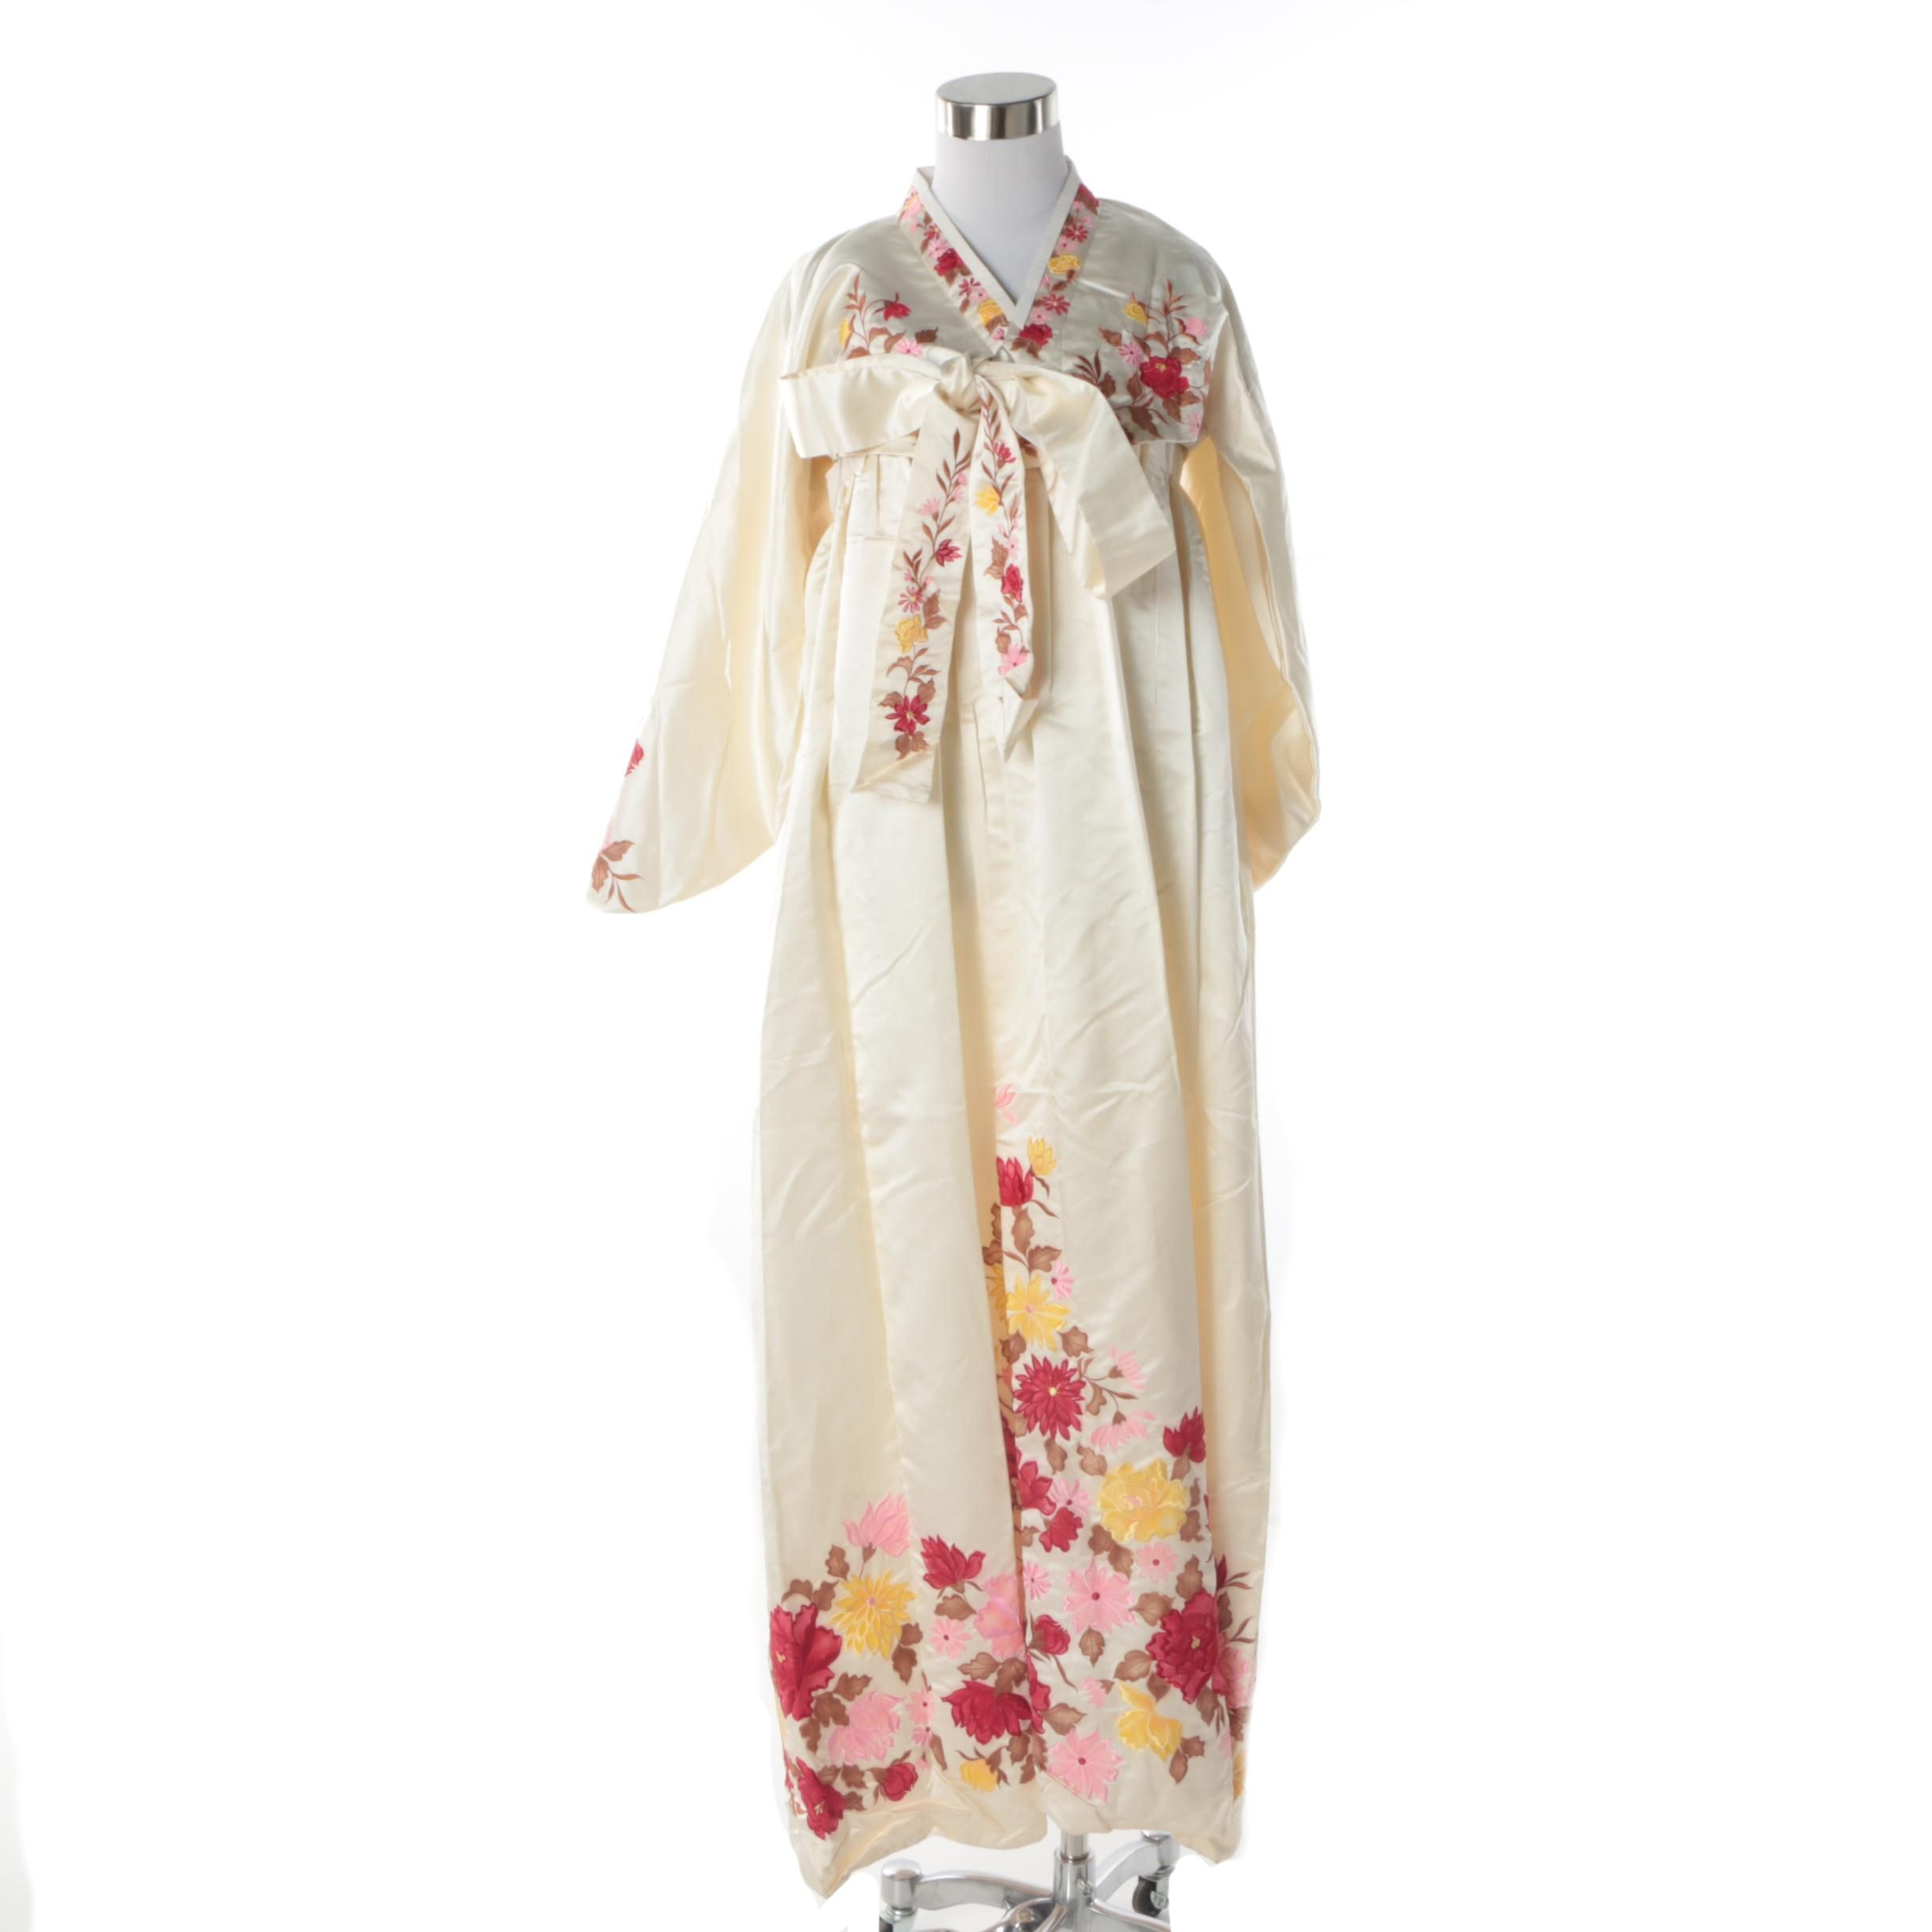 Vintage Korean Silk Hanbok and Sleeveless Dress with Floral Embroidery